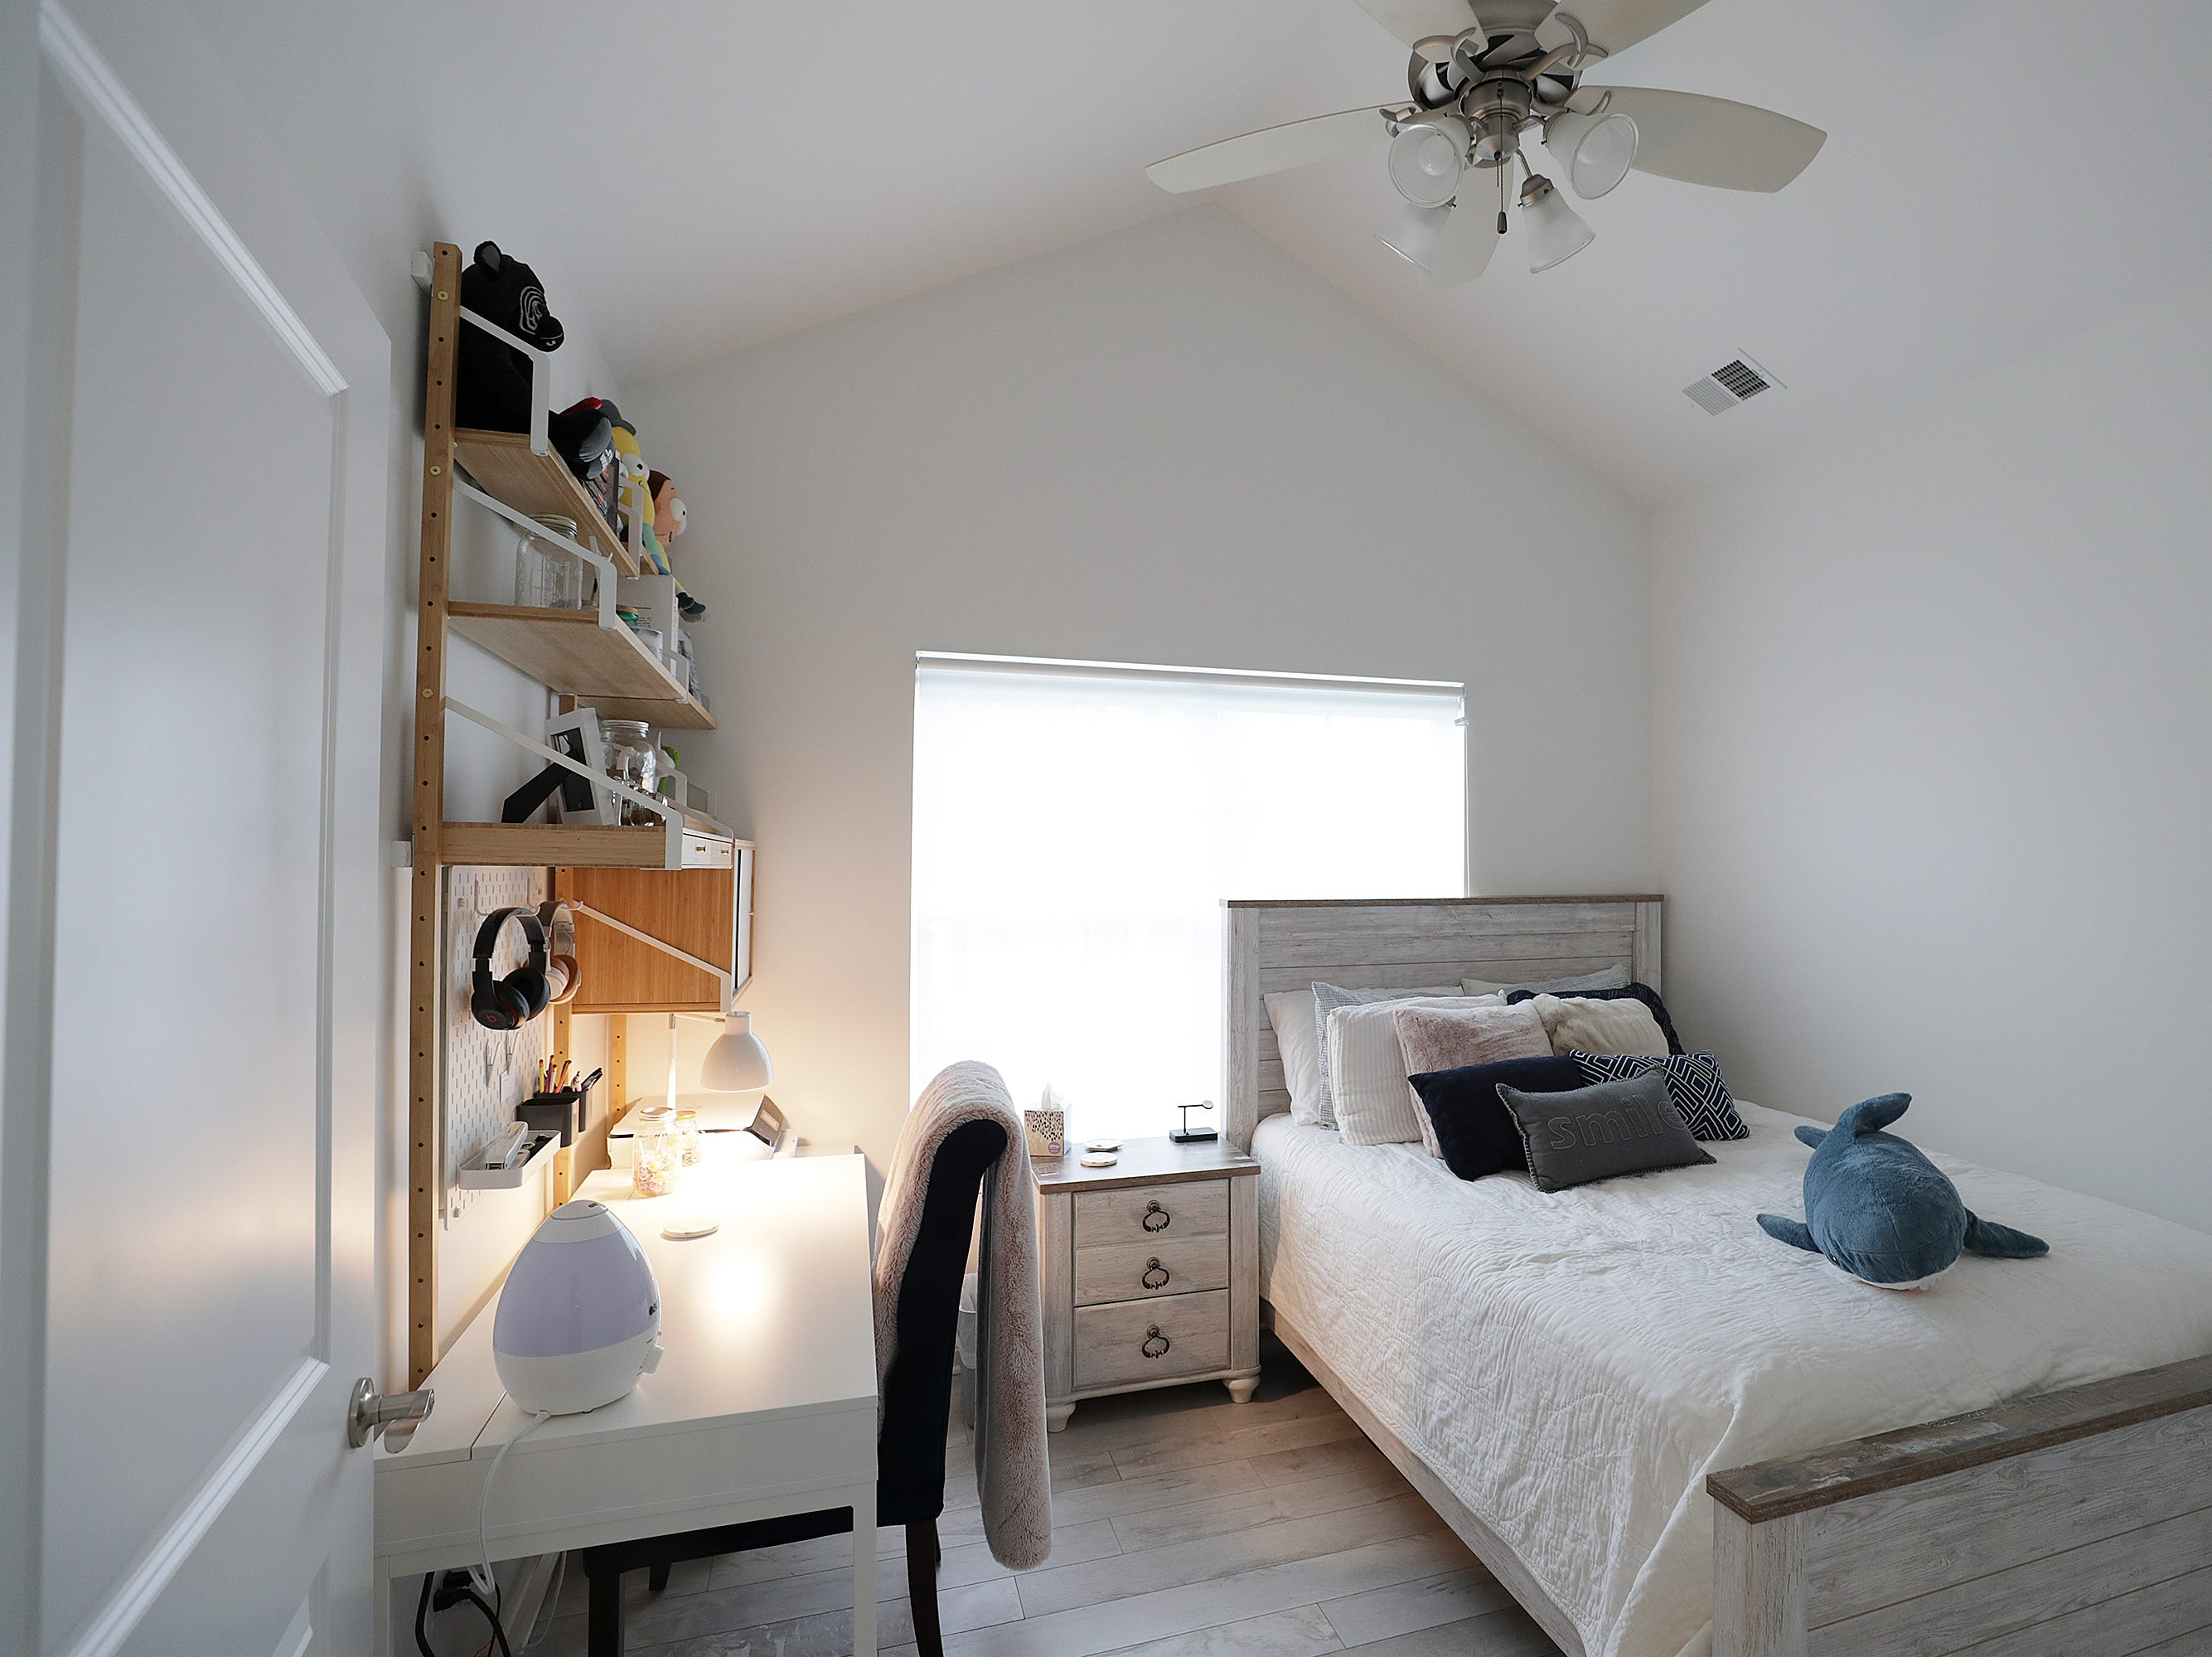 Allie's bedroom in the home of Michael and Andria Triplett.